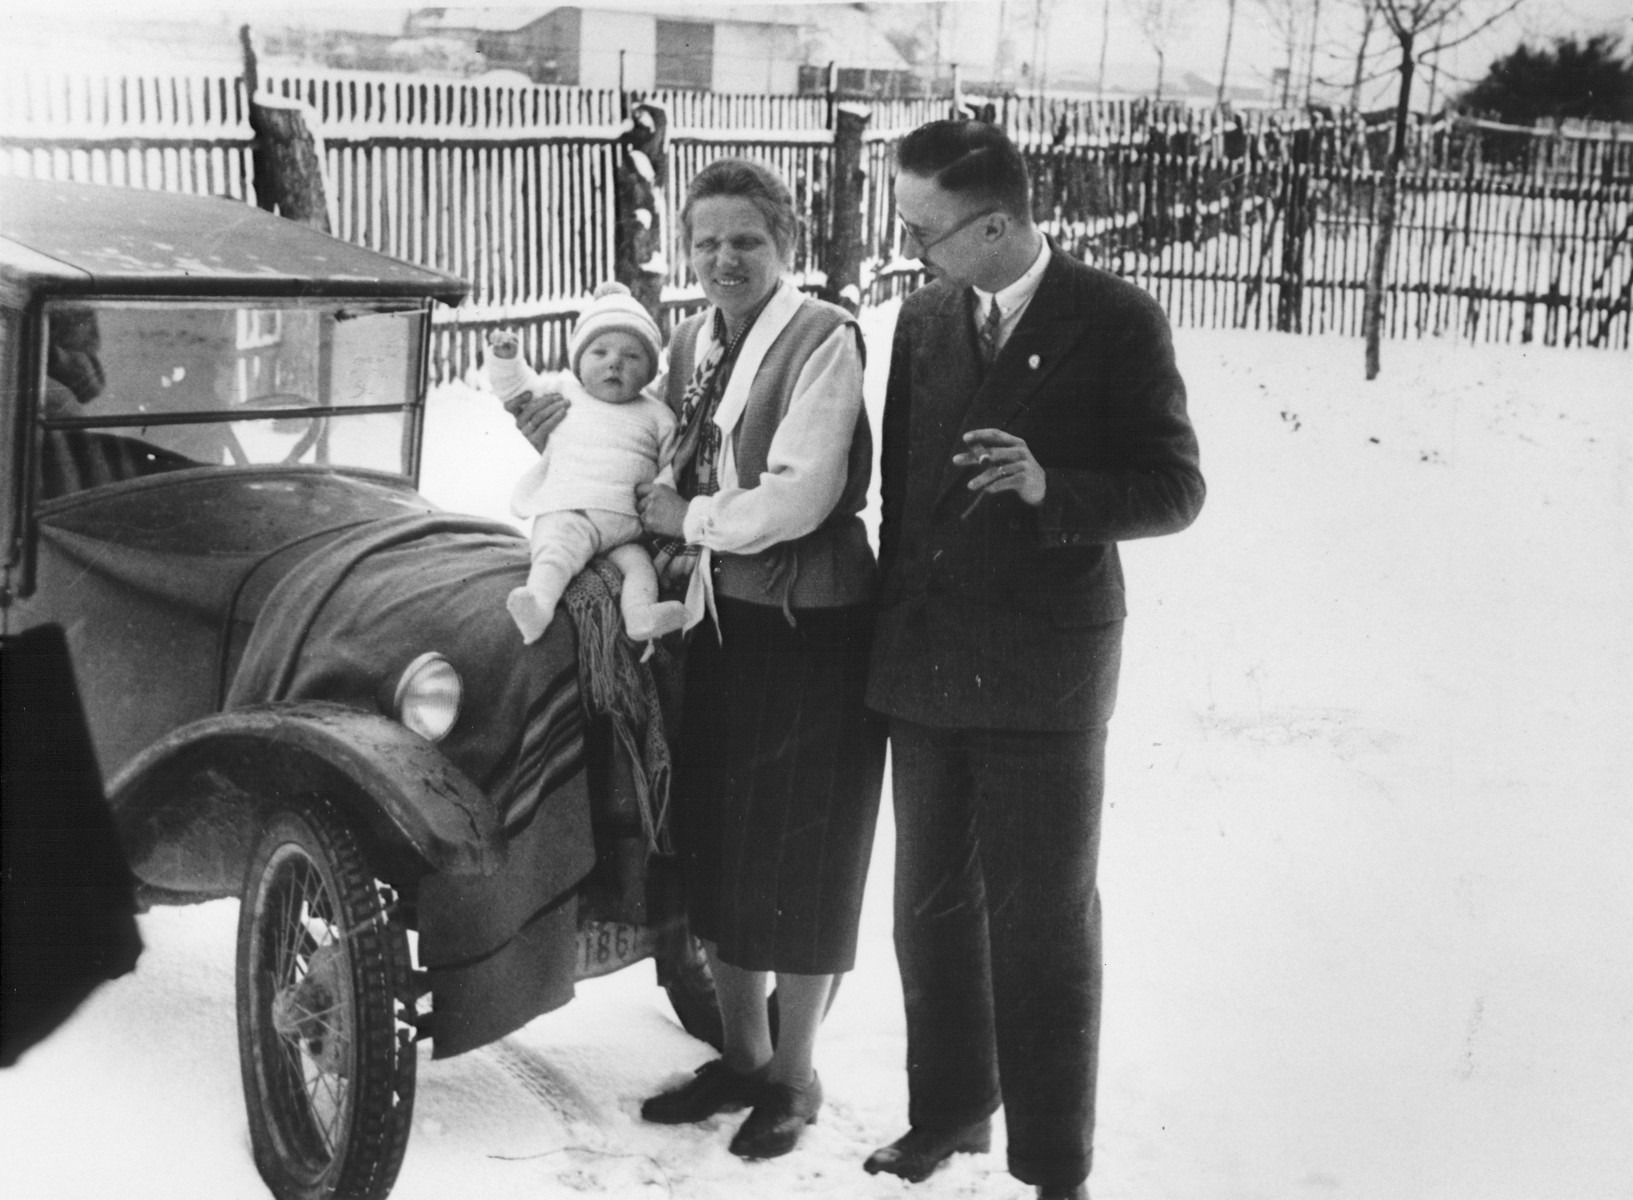 Heinrich and Margarete Himmler pose with their infant daughter Gudrun outside in the snow in front of their car.